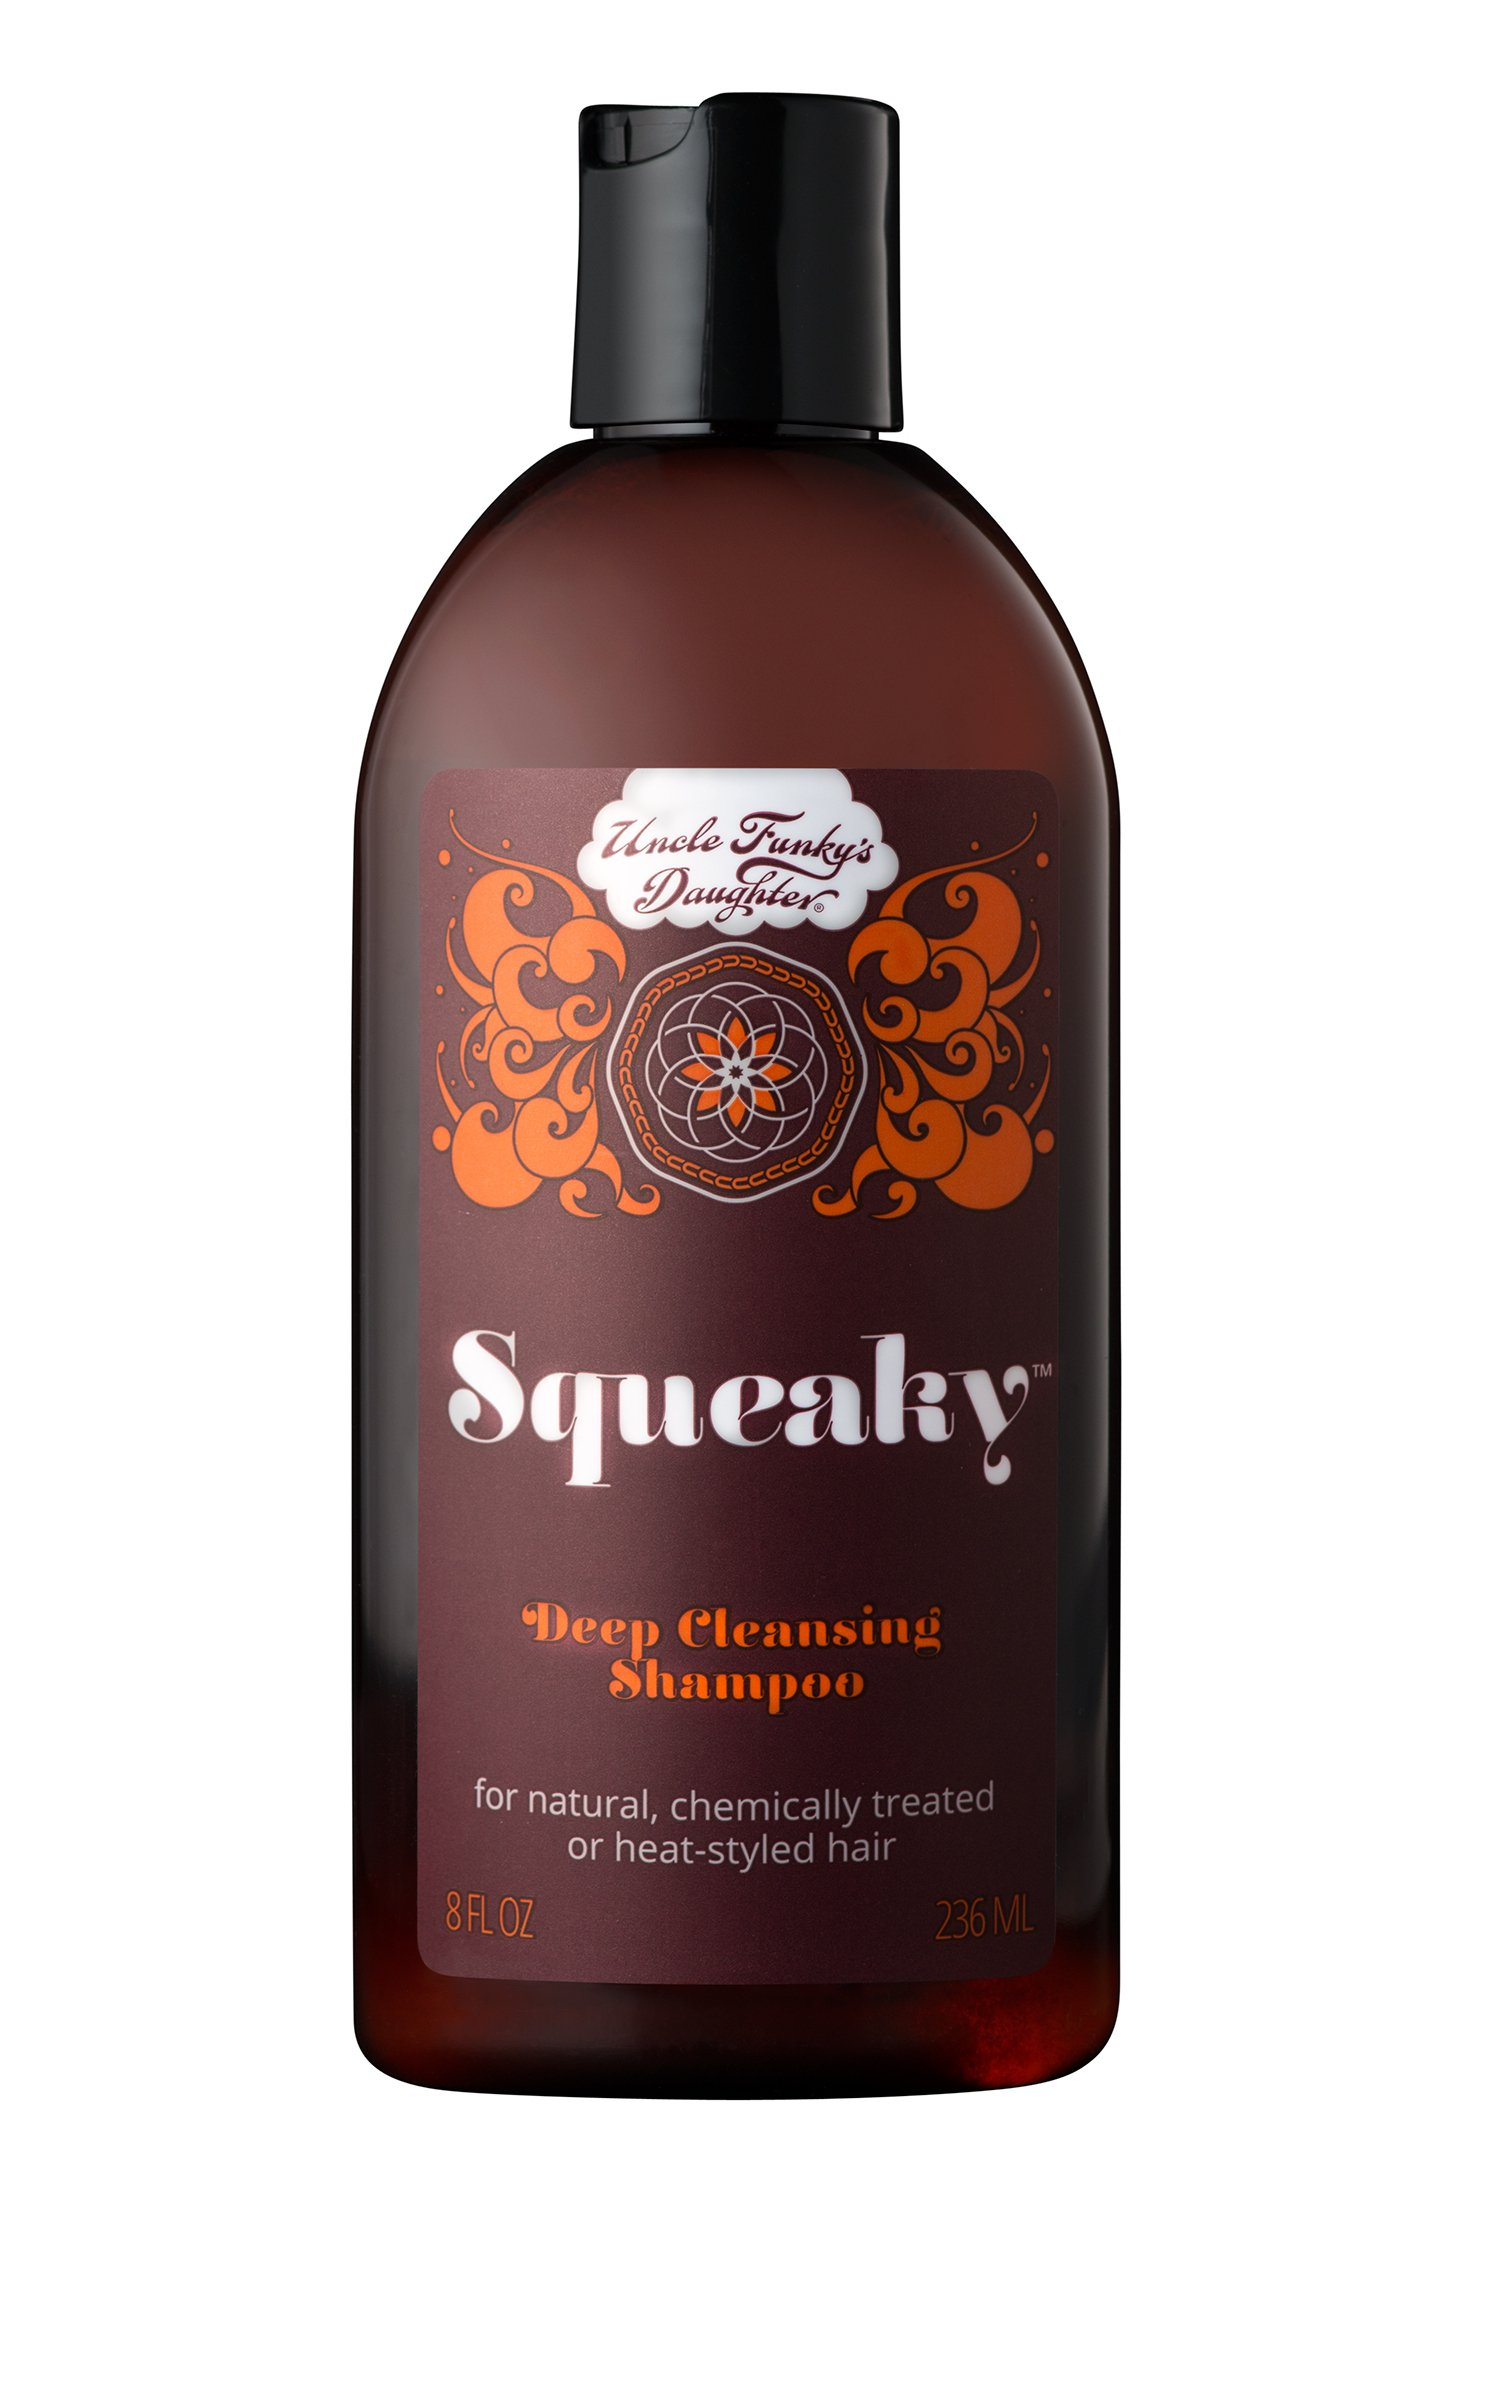 Squeaky Deep Cleansing Shampoo, 8 oz